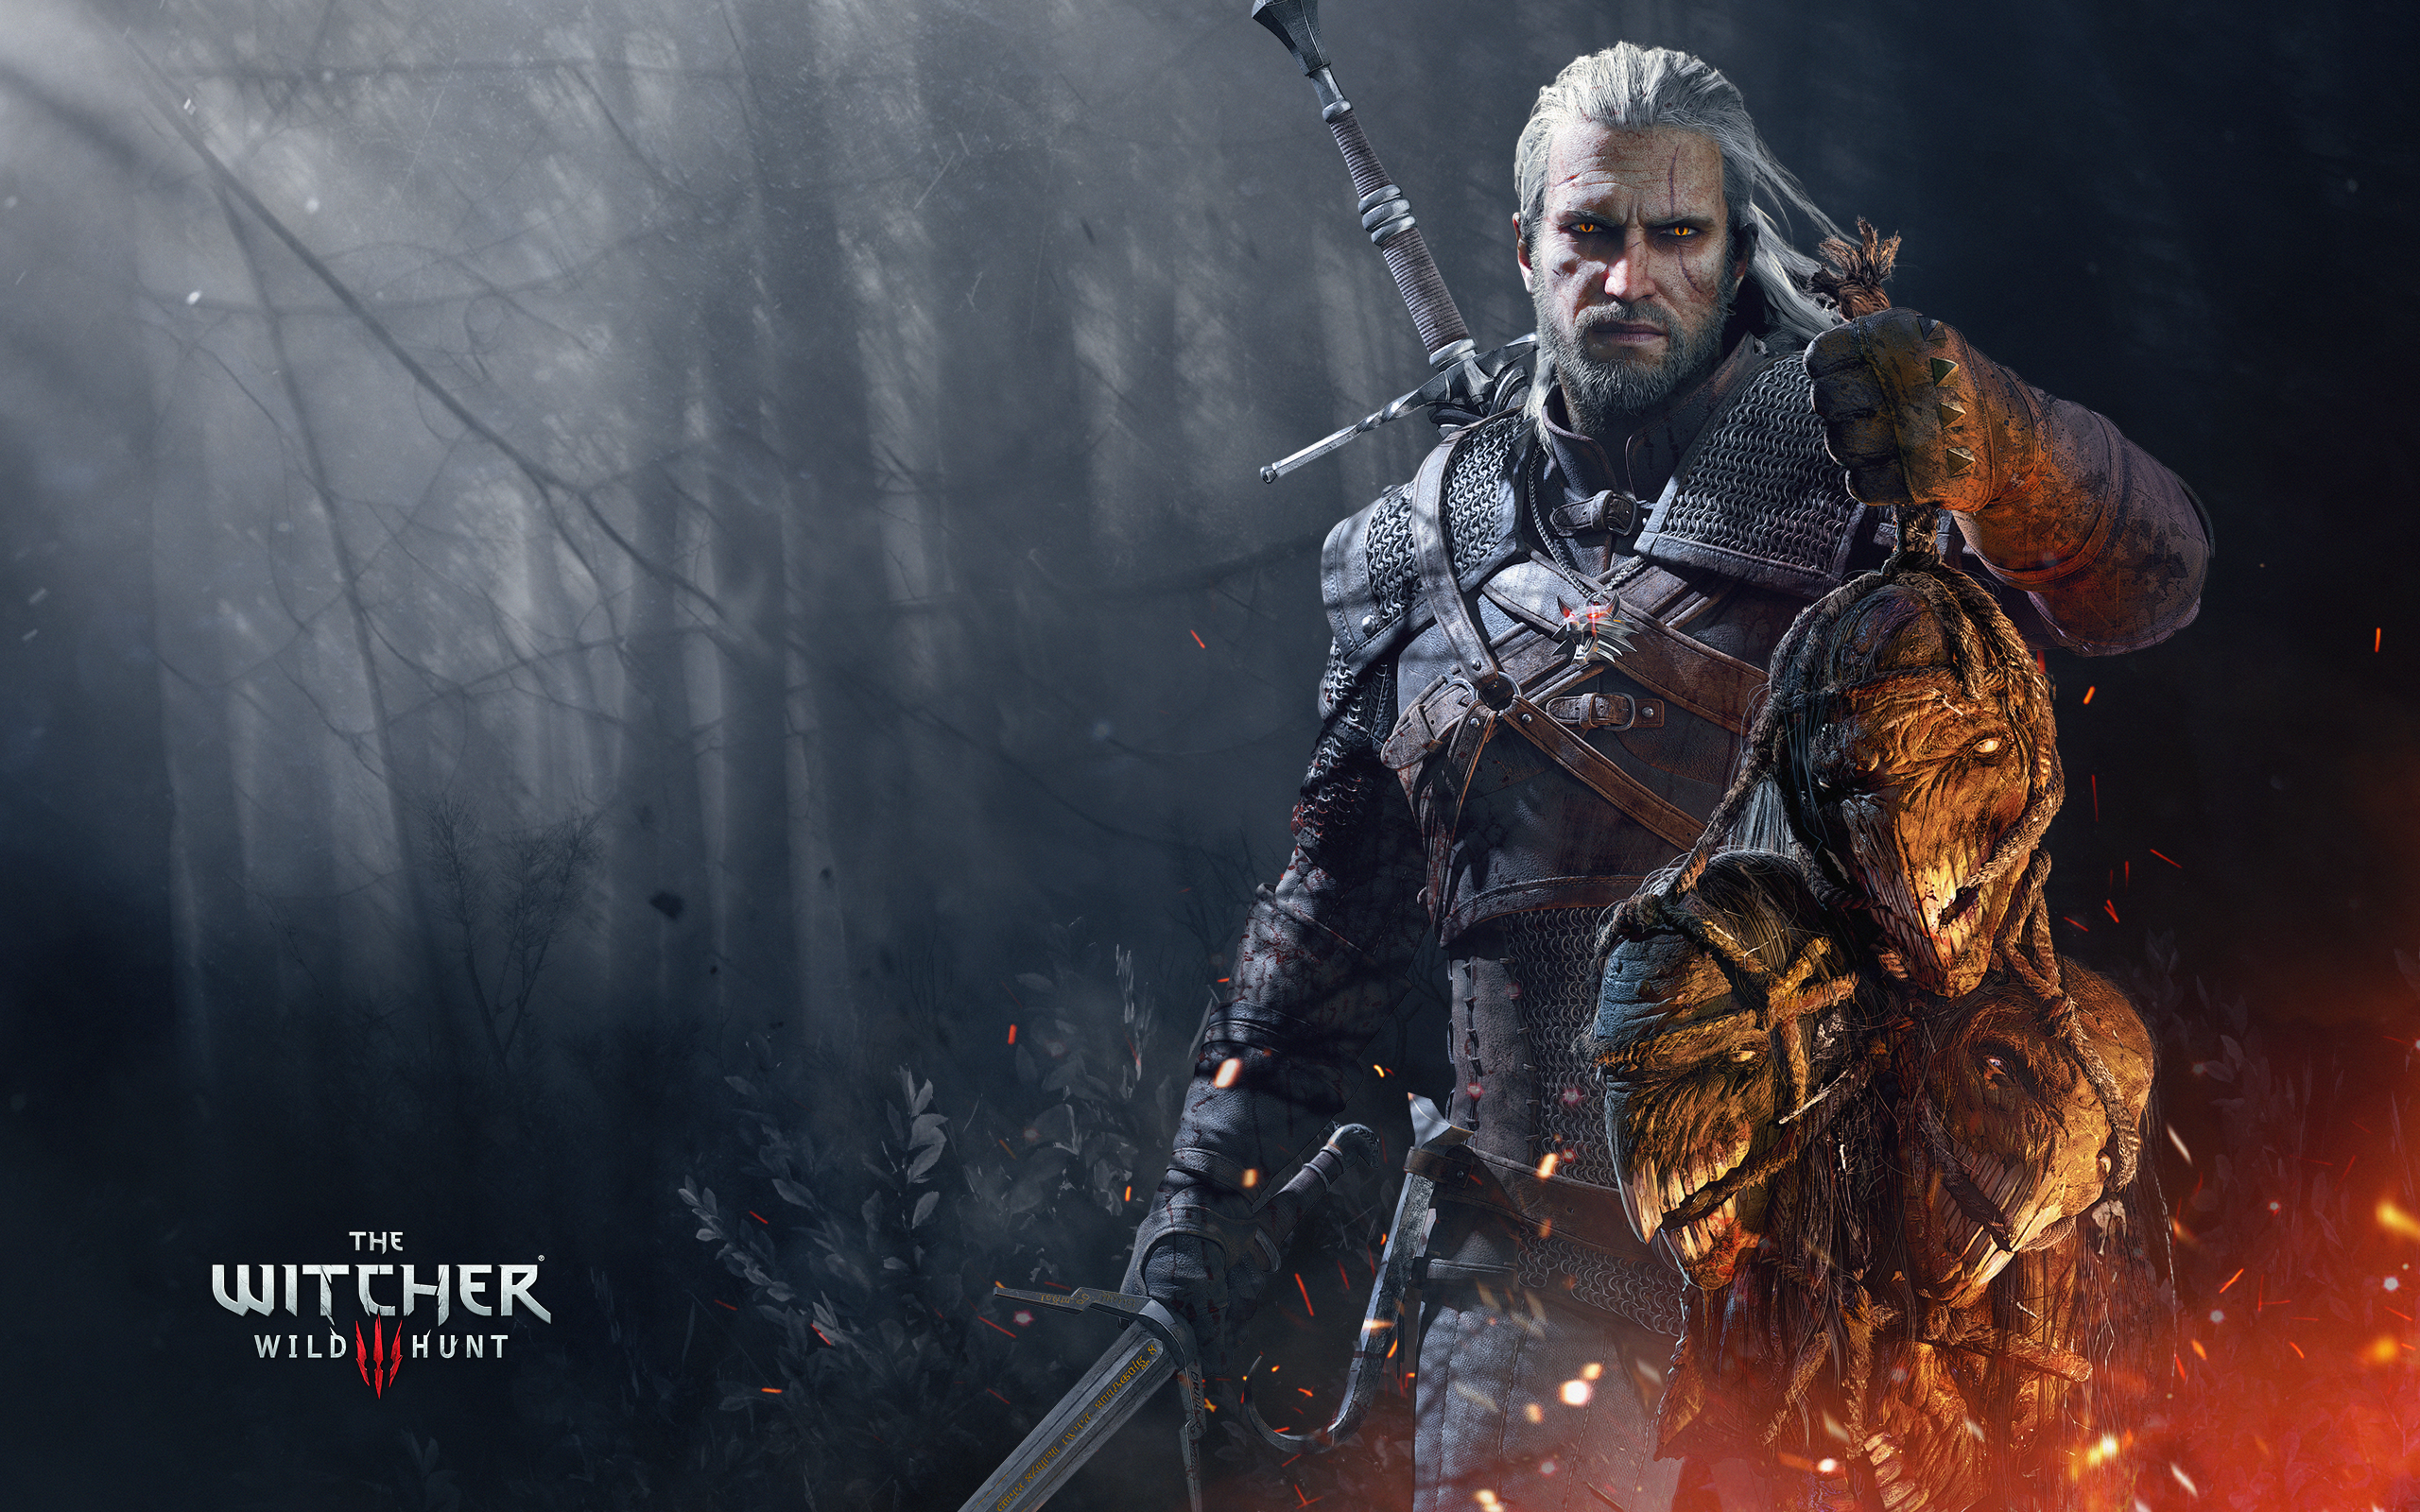 witcher3_en_wallpaper_the_witcher_3_wild_hunt_geralt_with_trophies_2560x1600_1449484679.png - Witcher 3: Wild Hunt, the